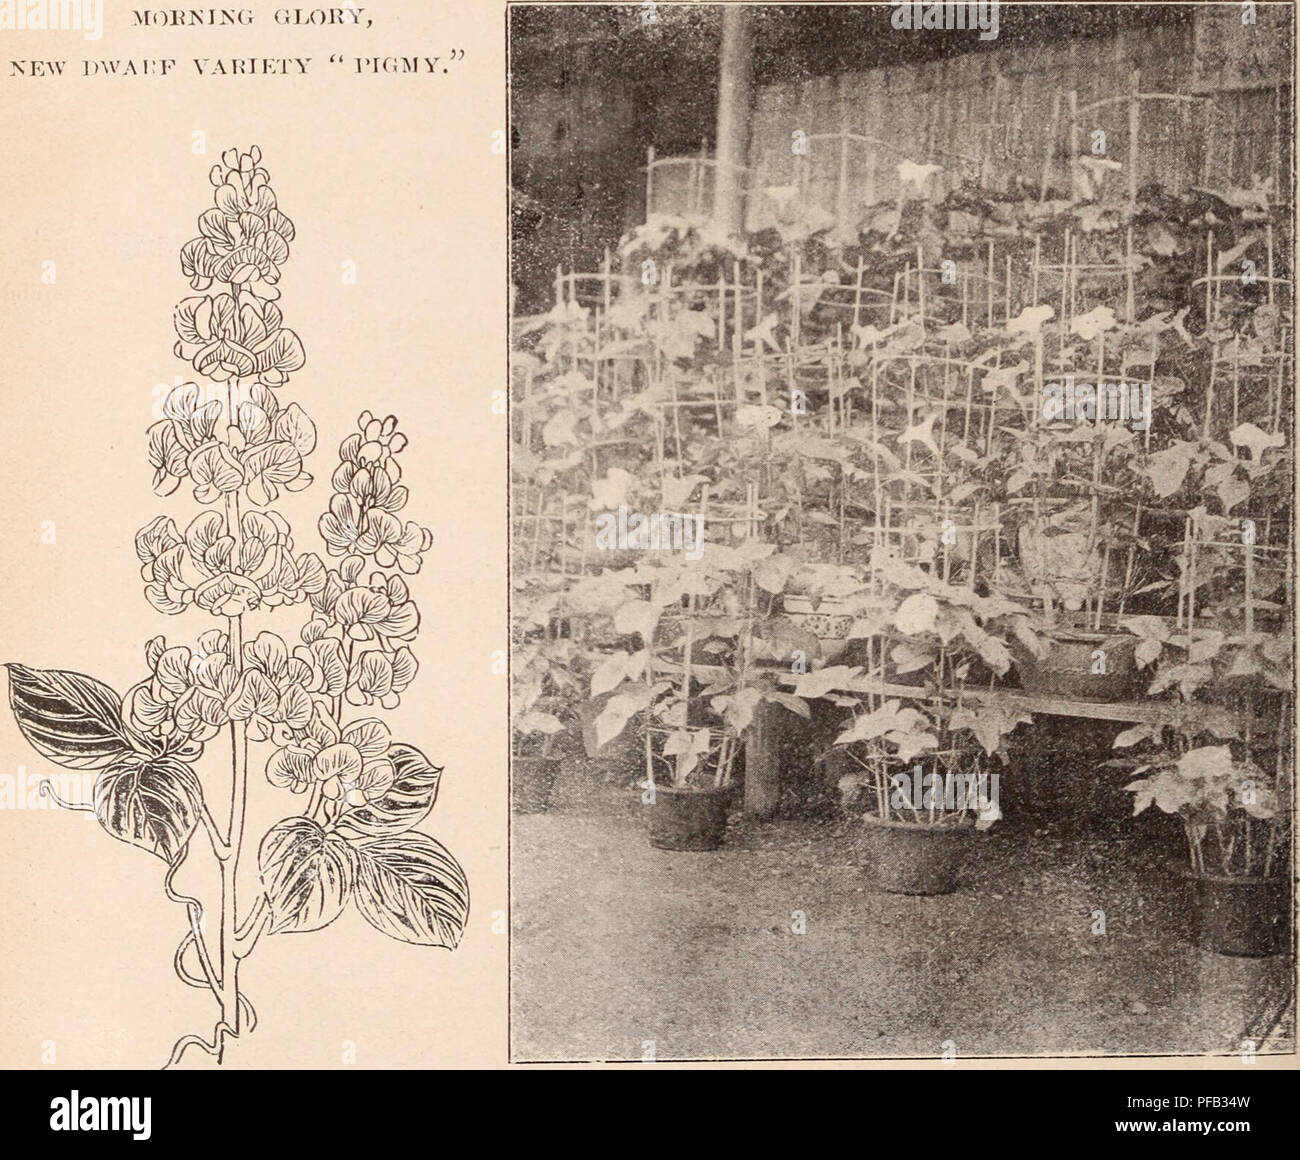 ". Descriptive catalogue of flowering, ornamental trees, shrubs, bulbs, herbs, climbers, fruit trees, &c., &c., &c. / for sale by the Yokohama Nursery Co., Limited.. Nursery Catalogue. p<n- pouivl. New Dwarf Pigmy $2.00 "" per packet 50 Now Giant variety, iimnense large flower 1.50 IJest Double of assorted colours.... 3.50 Yellow colour, siiig^lc rare, pc r pkt. .75 Hest siugie fringed petals 70 Dest single 35 Doliclios Lablab Daylight "" 50 "" scarlet GO MOEI^I.NG (J LORY, NEAV 1)WA1:F VArUILTY "" rKIMV. DOWGHO^ LABLAB. "" Daylight.'» MORNING GLORY CCT/riVATE - Stock Image"